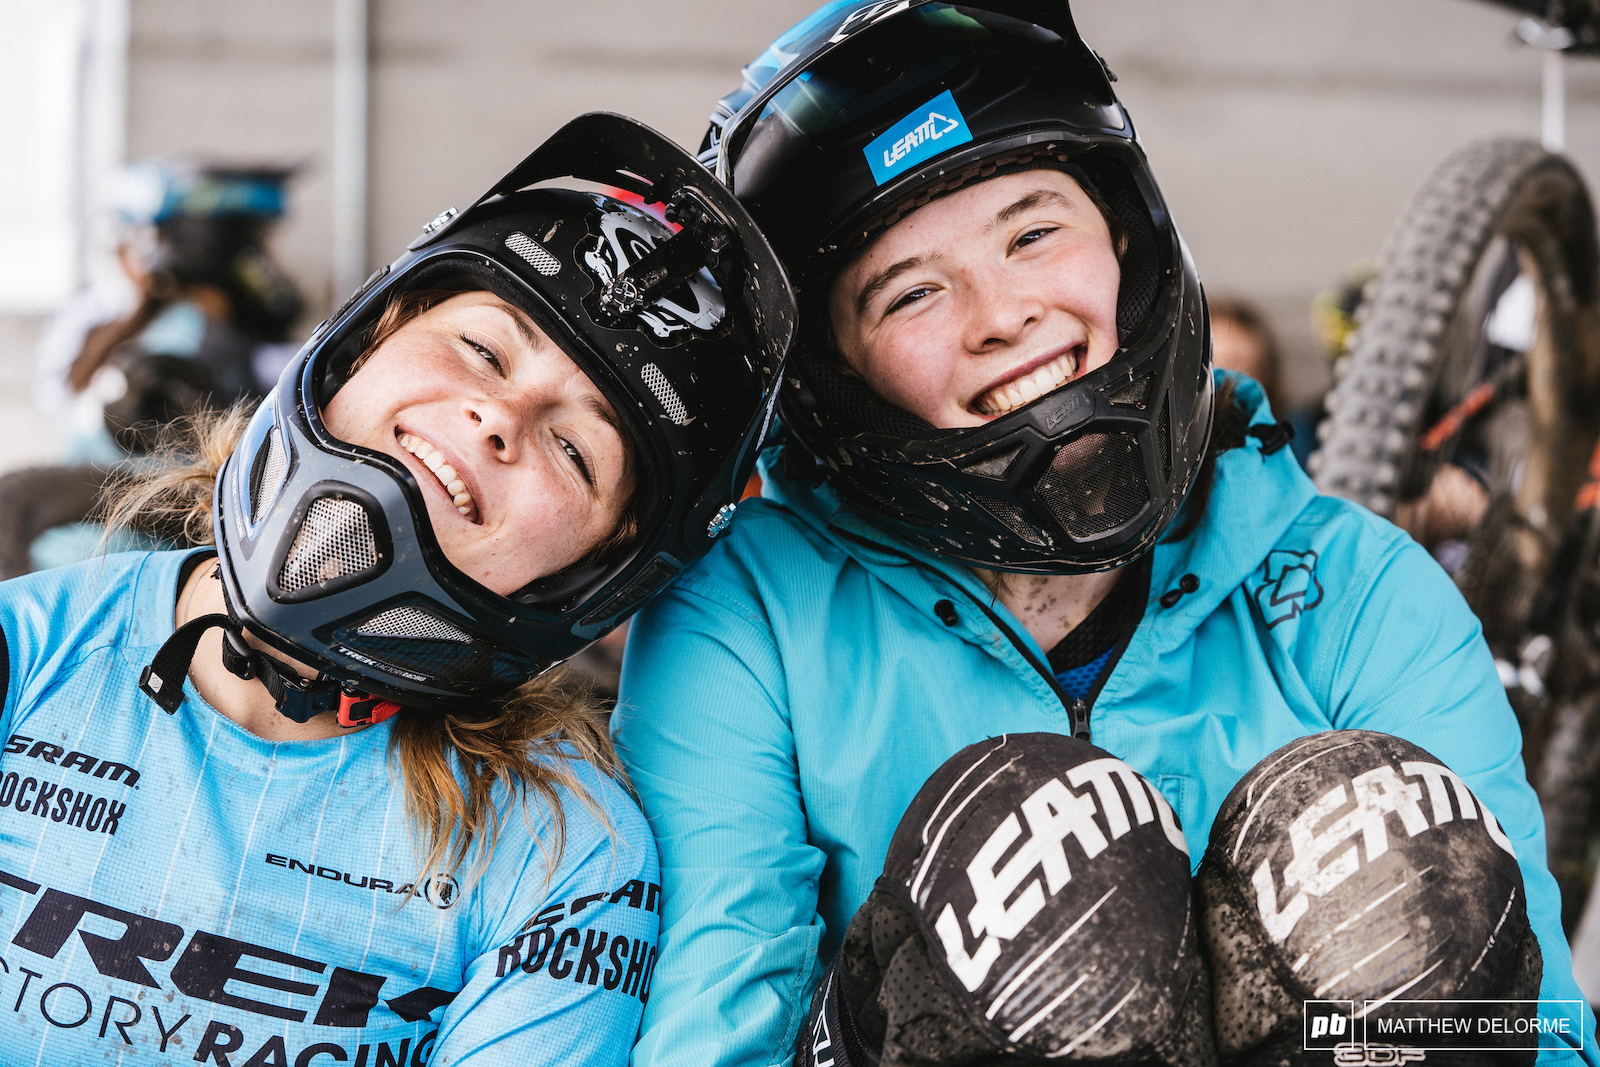 After a brutal first day of racing day two brought the smiles back.